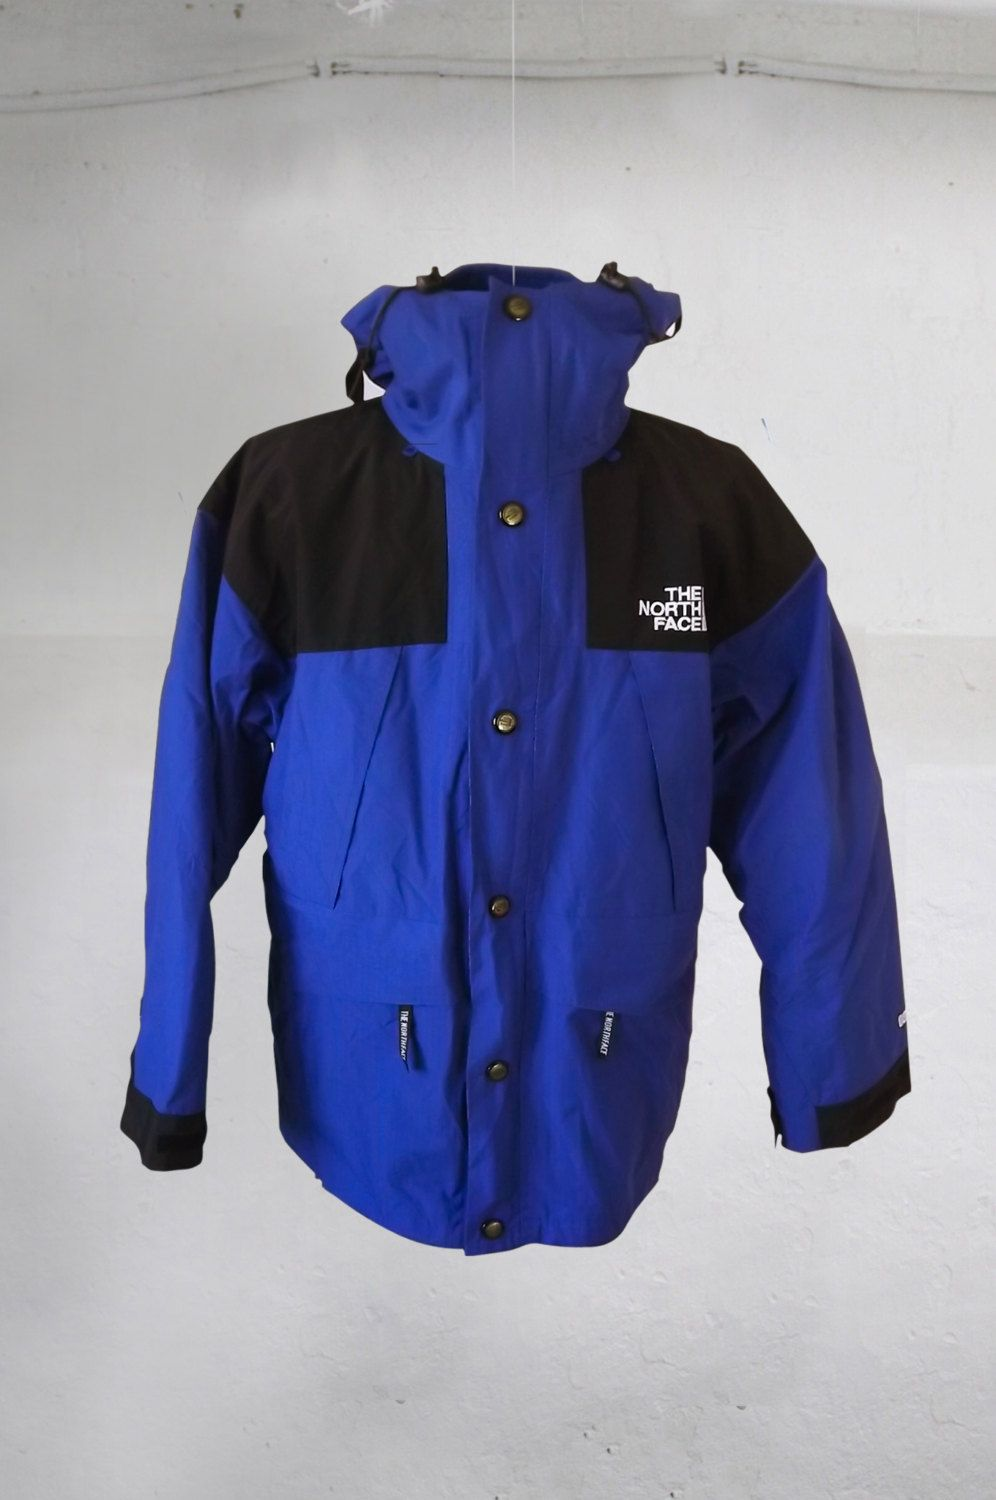 Vintage 90s The North Face Men S 3 In 1 Gore Tex Winter Ski Jacket Coat Blue Black Size M By Vapeovintage On Ets North Face Mens The North Face Ski Jacket [ 1500 x 996 Pixel ]